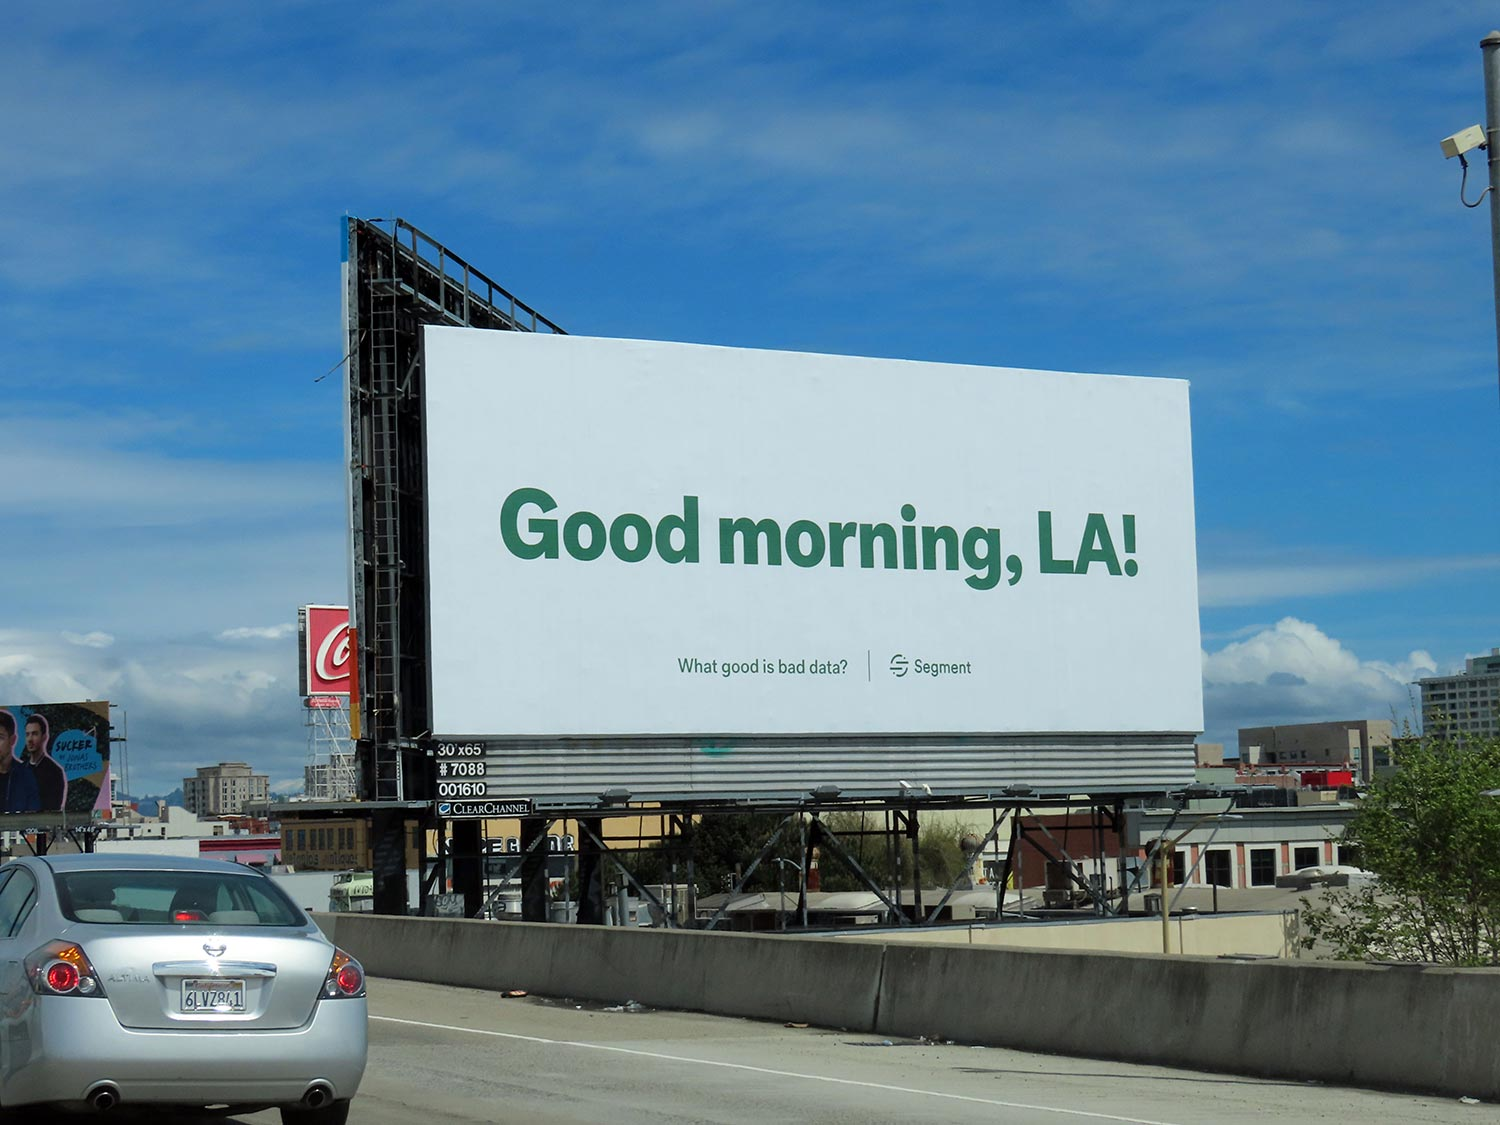 Data platform Segment shows a masterful command of effective startup marketing in this billboard and social media campaign